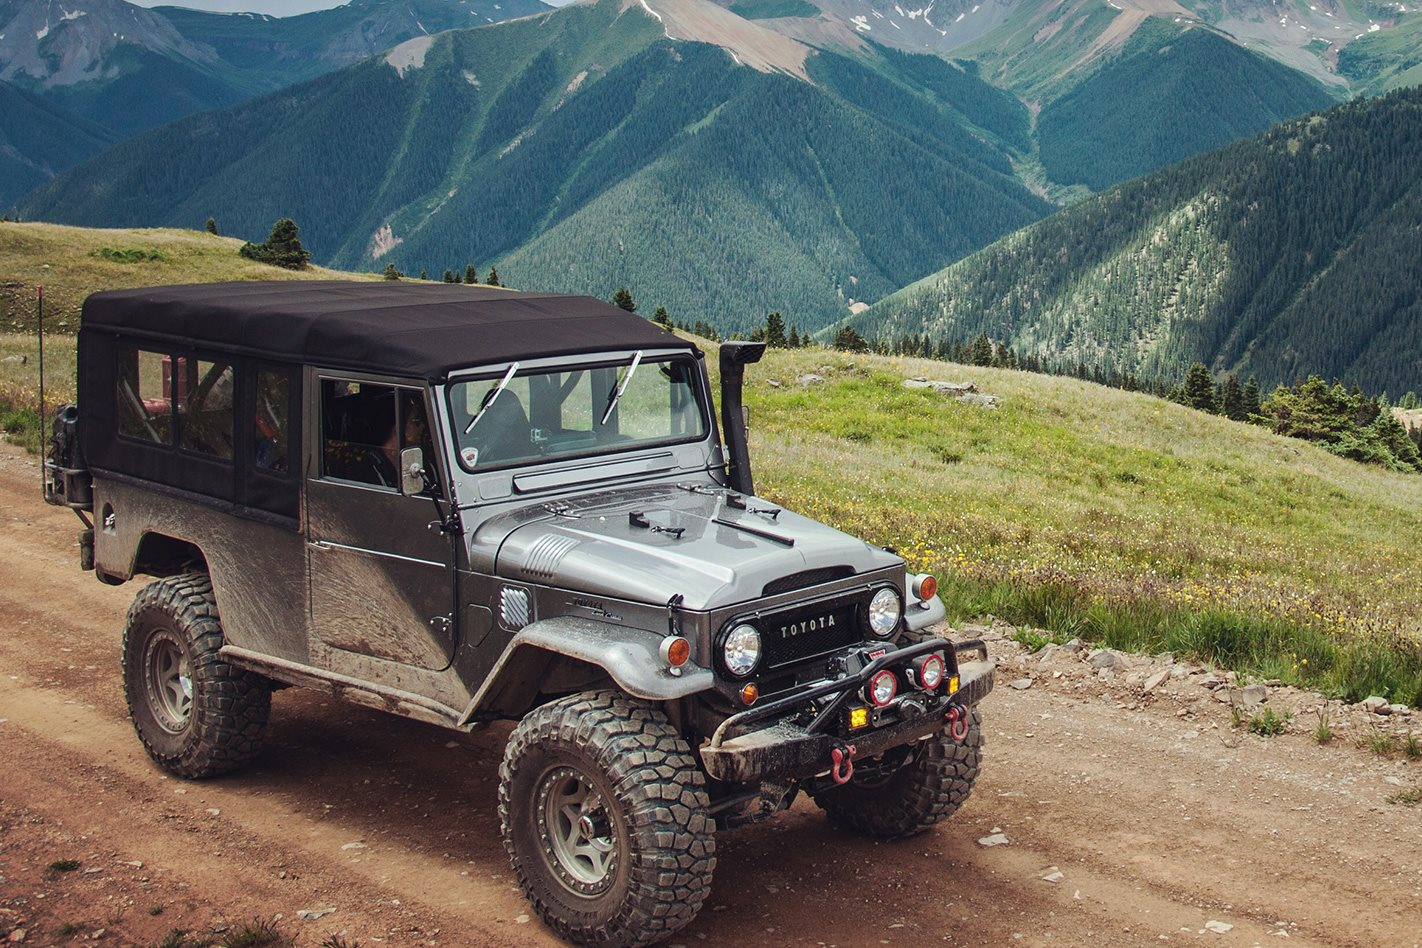 Custom Land Cruiser FJ45 Troopy offroading